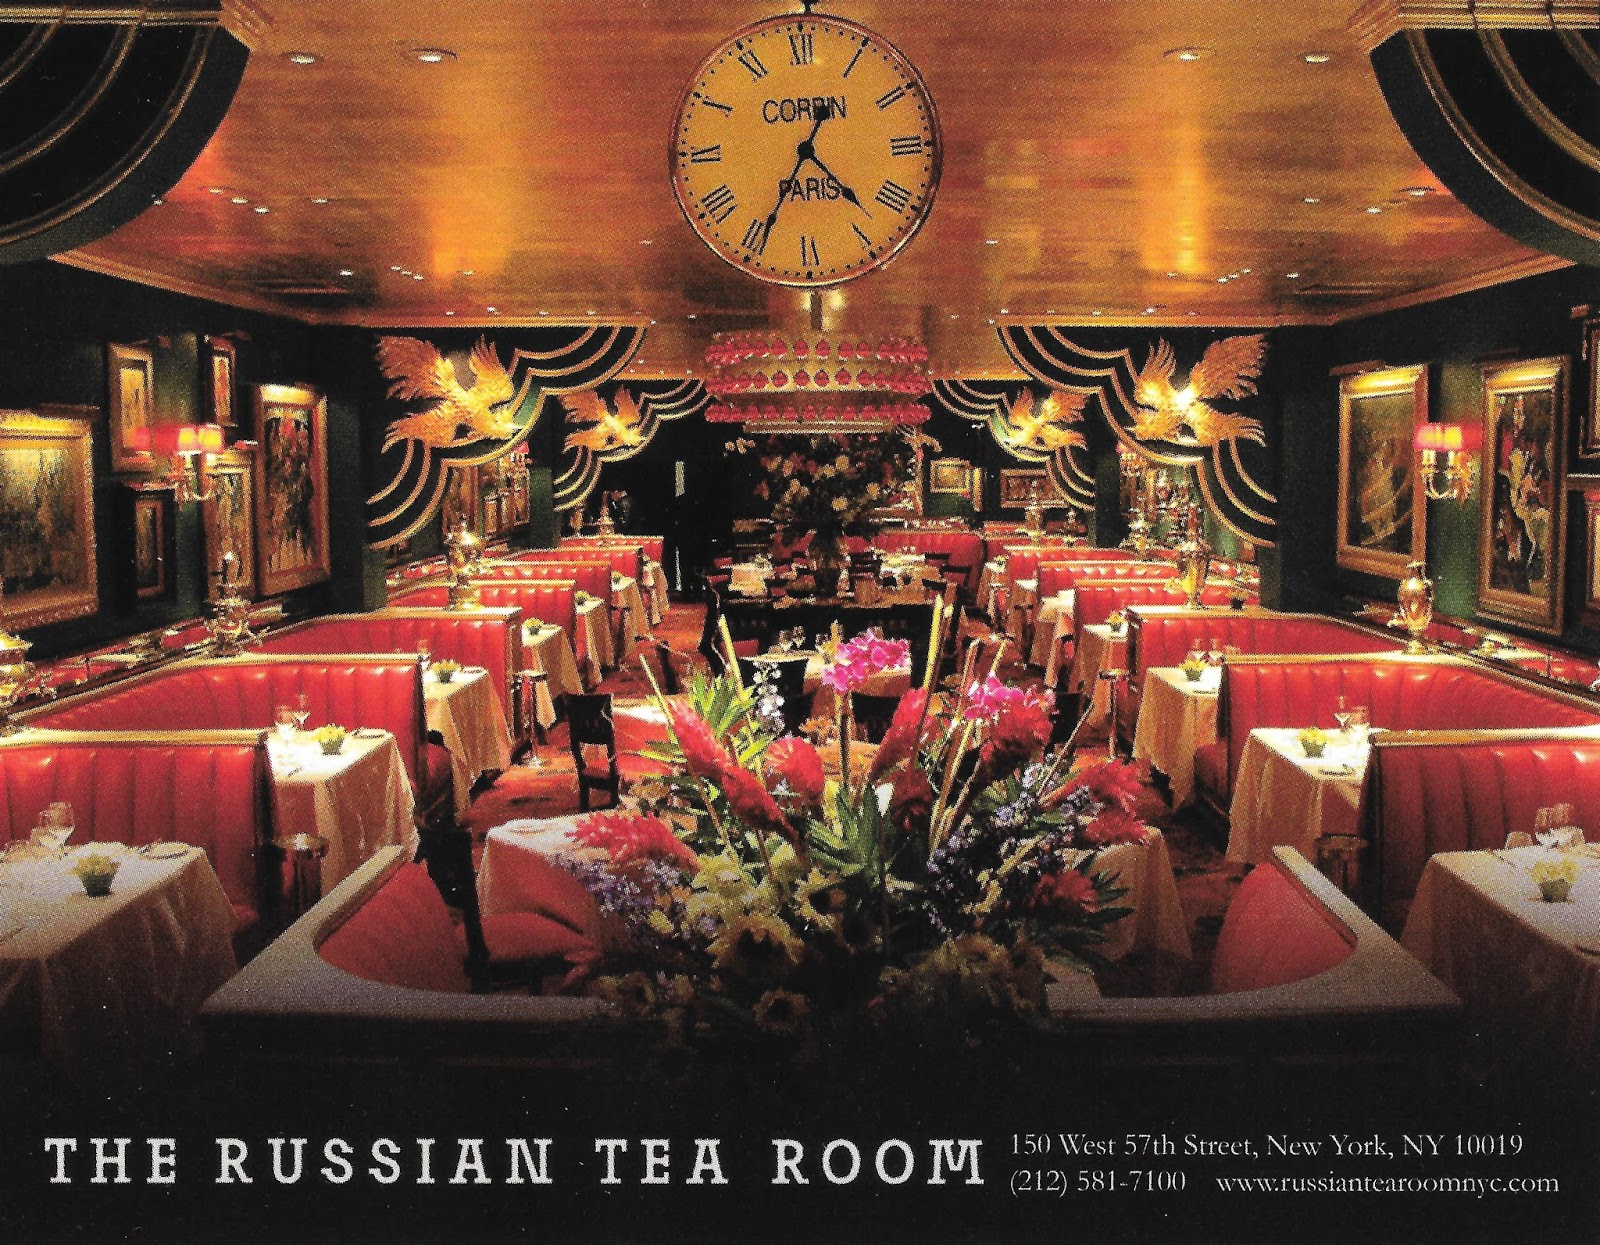 Relevant Tea Leaf: The Russian Tea Room, NYC